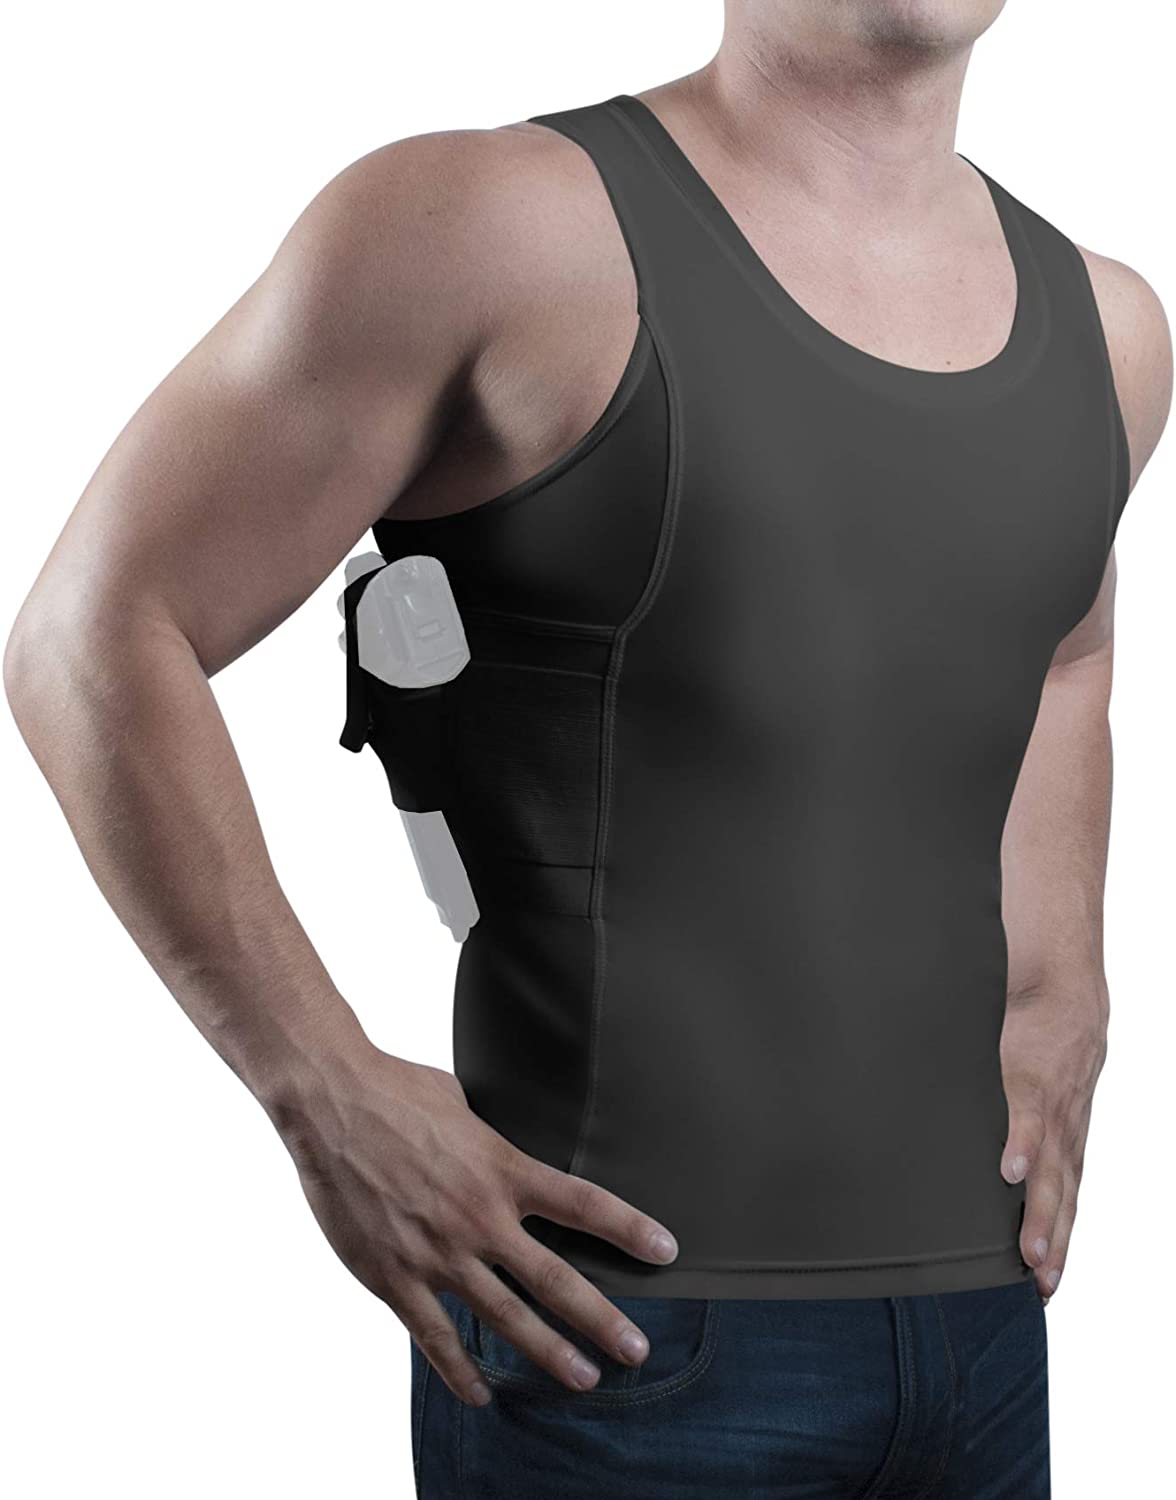 ConcealmentClothes Men's Compression Undercover- Concealed Carry Holster Tank Top Shirt